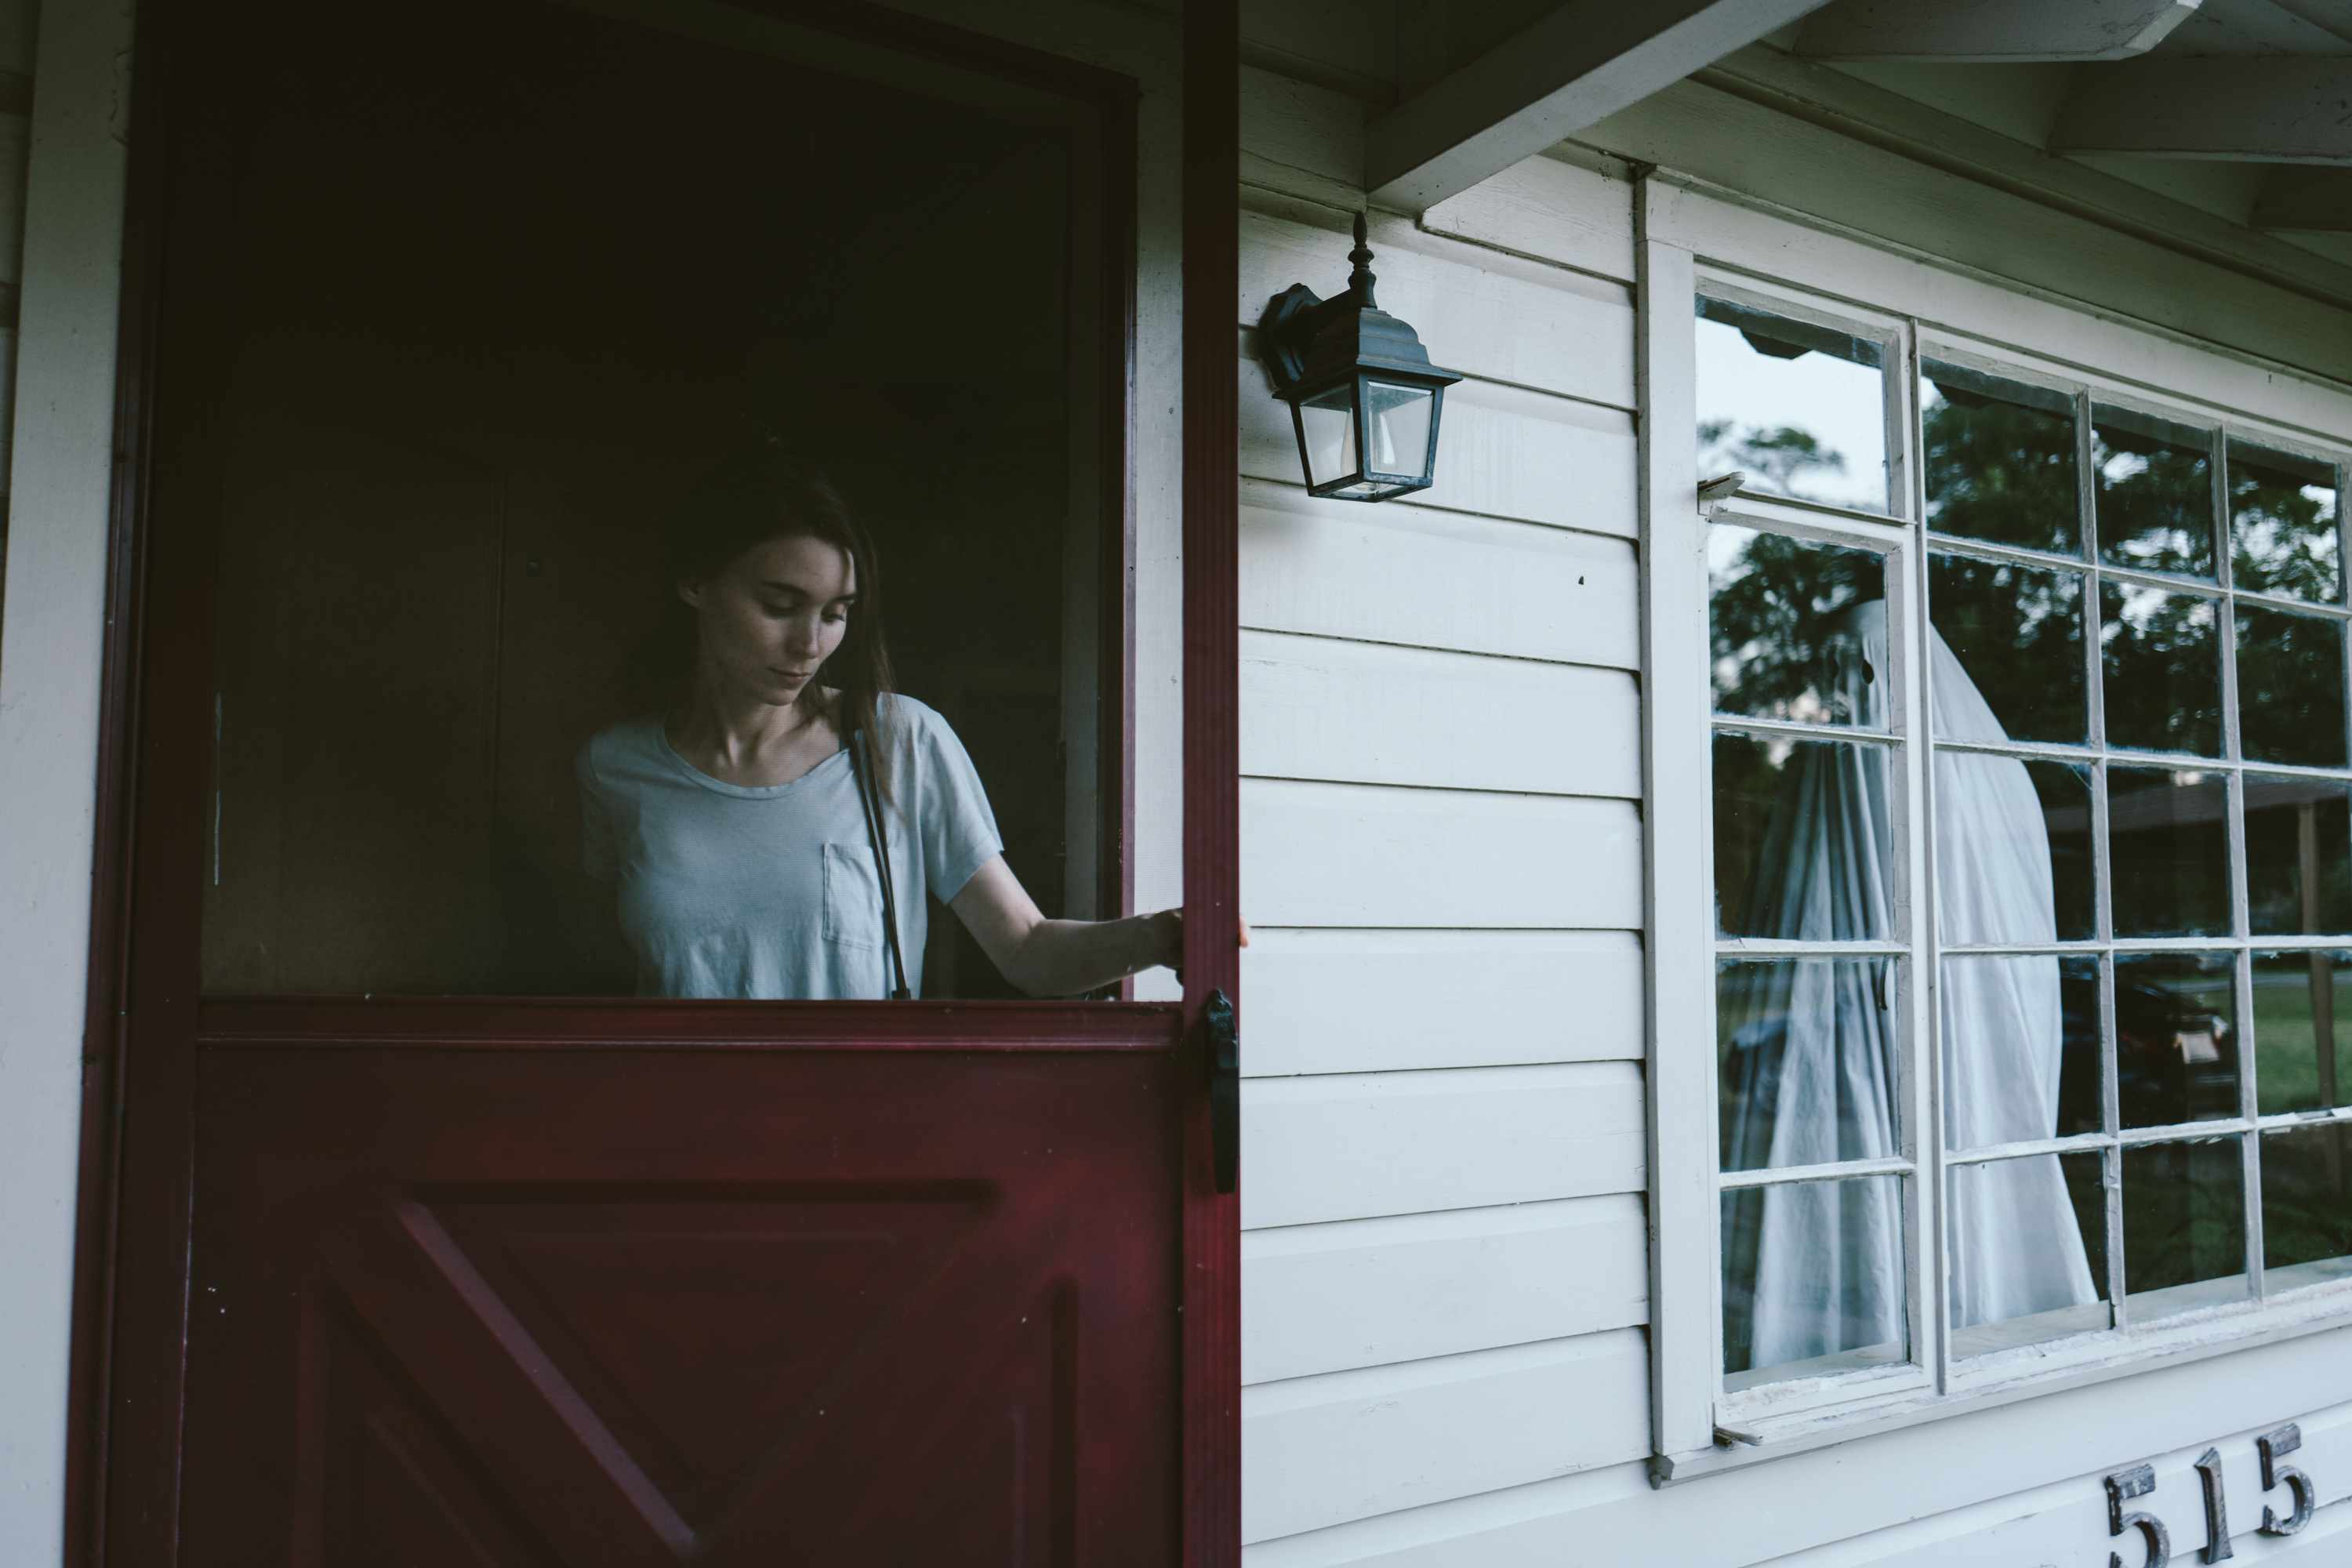 Rooney Mara and Casey Affleck in A GHOST STORY, photo credit - Bret Curry